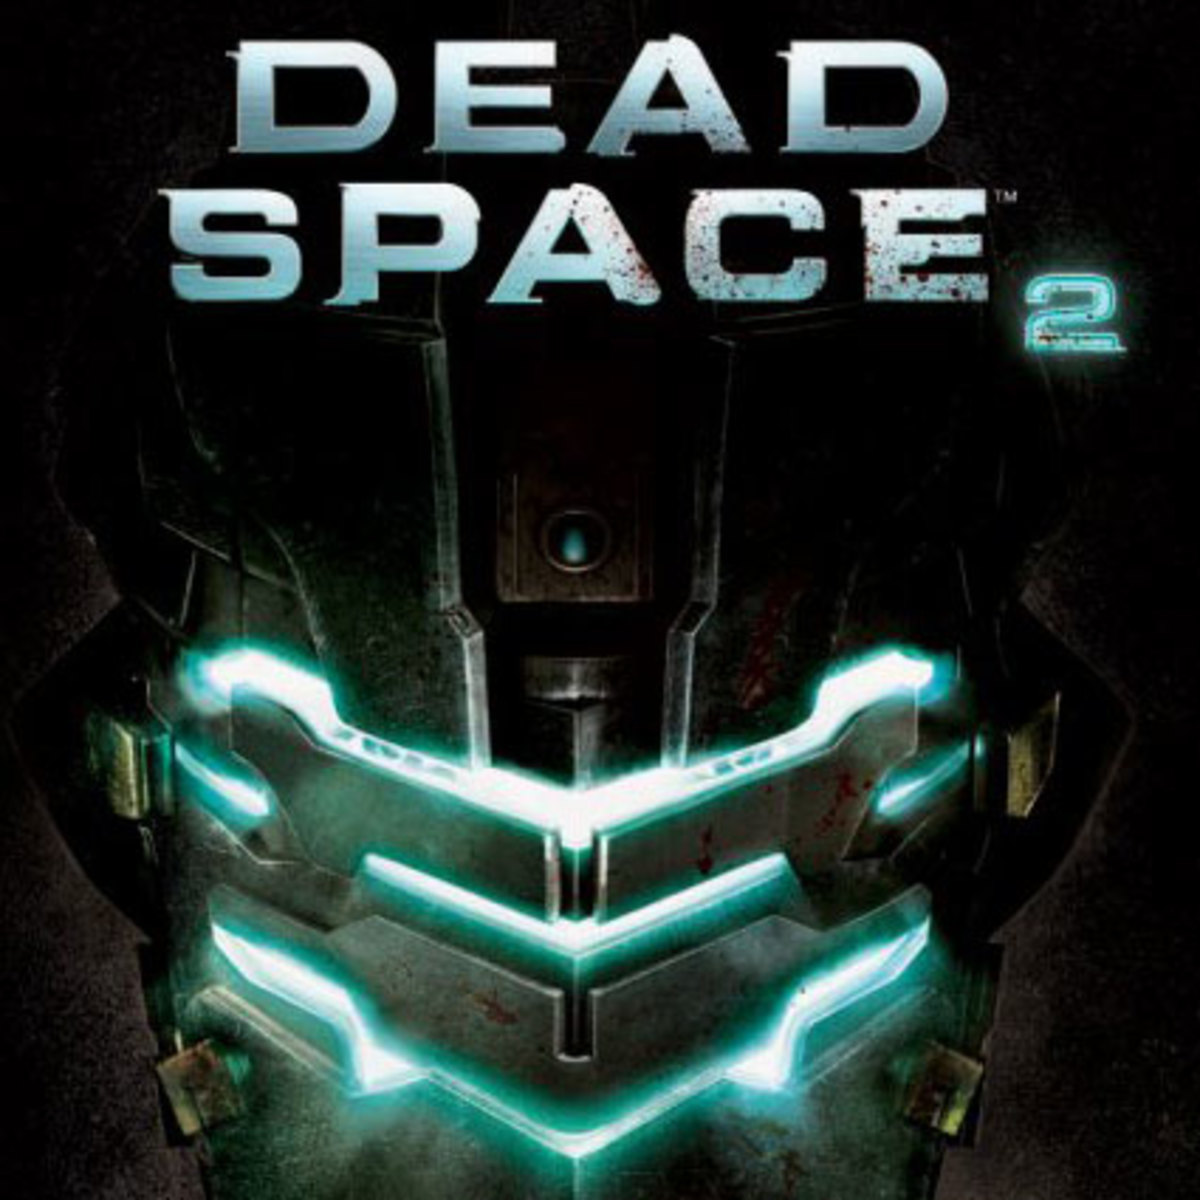 Promotional art for Dead Space 2